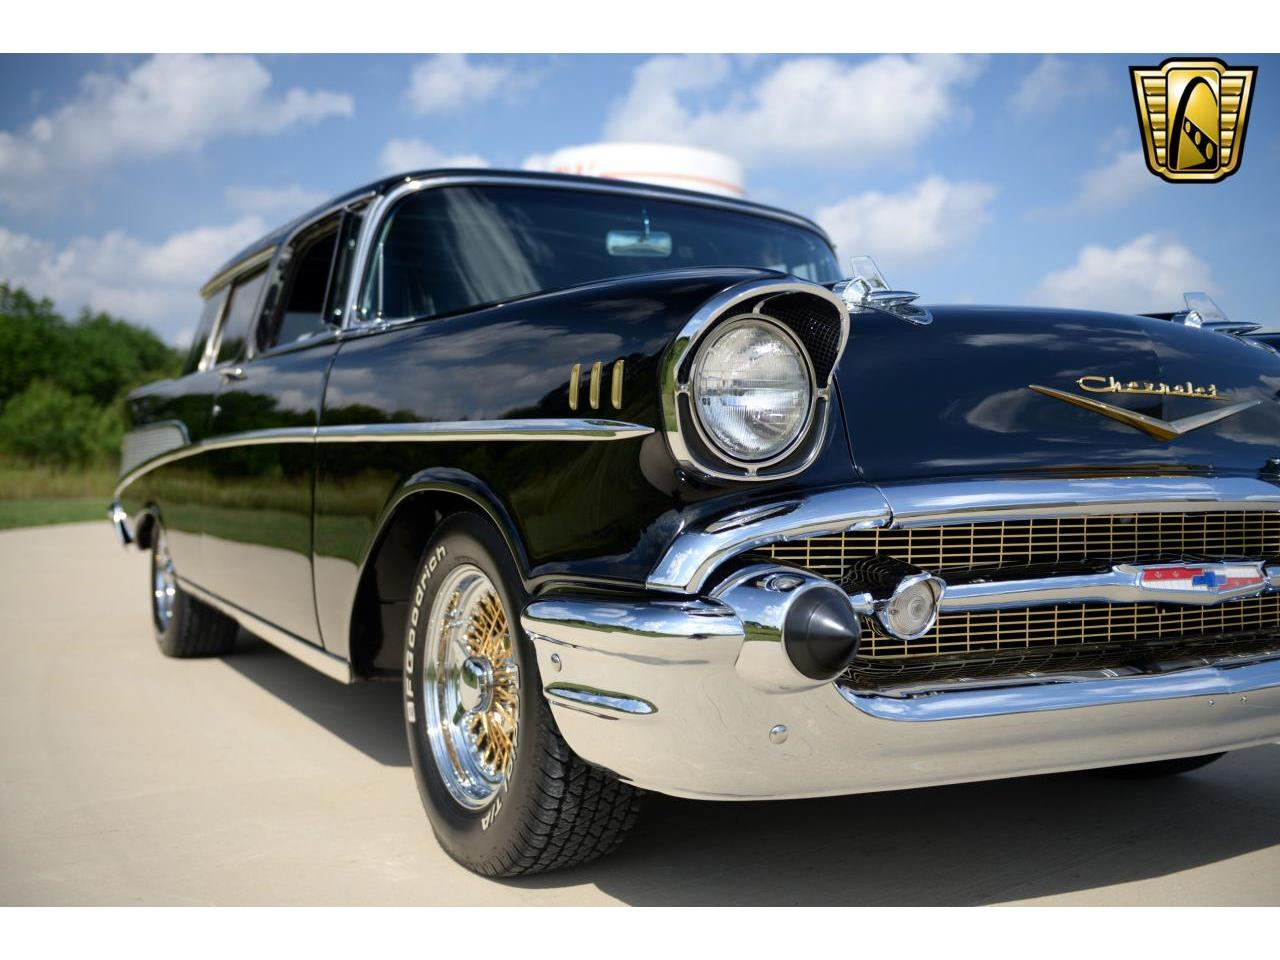 Large Picture of 1957 Chevrolet Nomad located in Texas - $59,000.00 Offered by Gateway Classic Cars - Dallas - L7NG